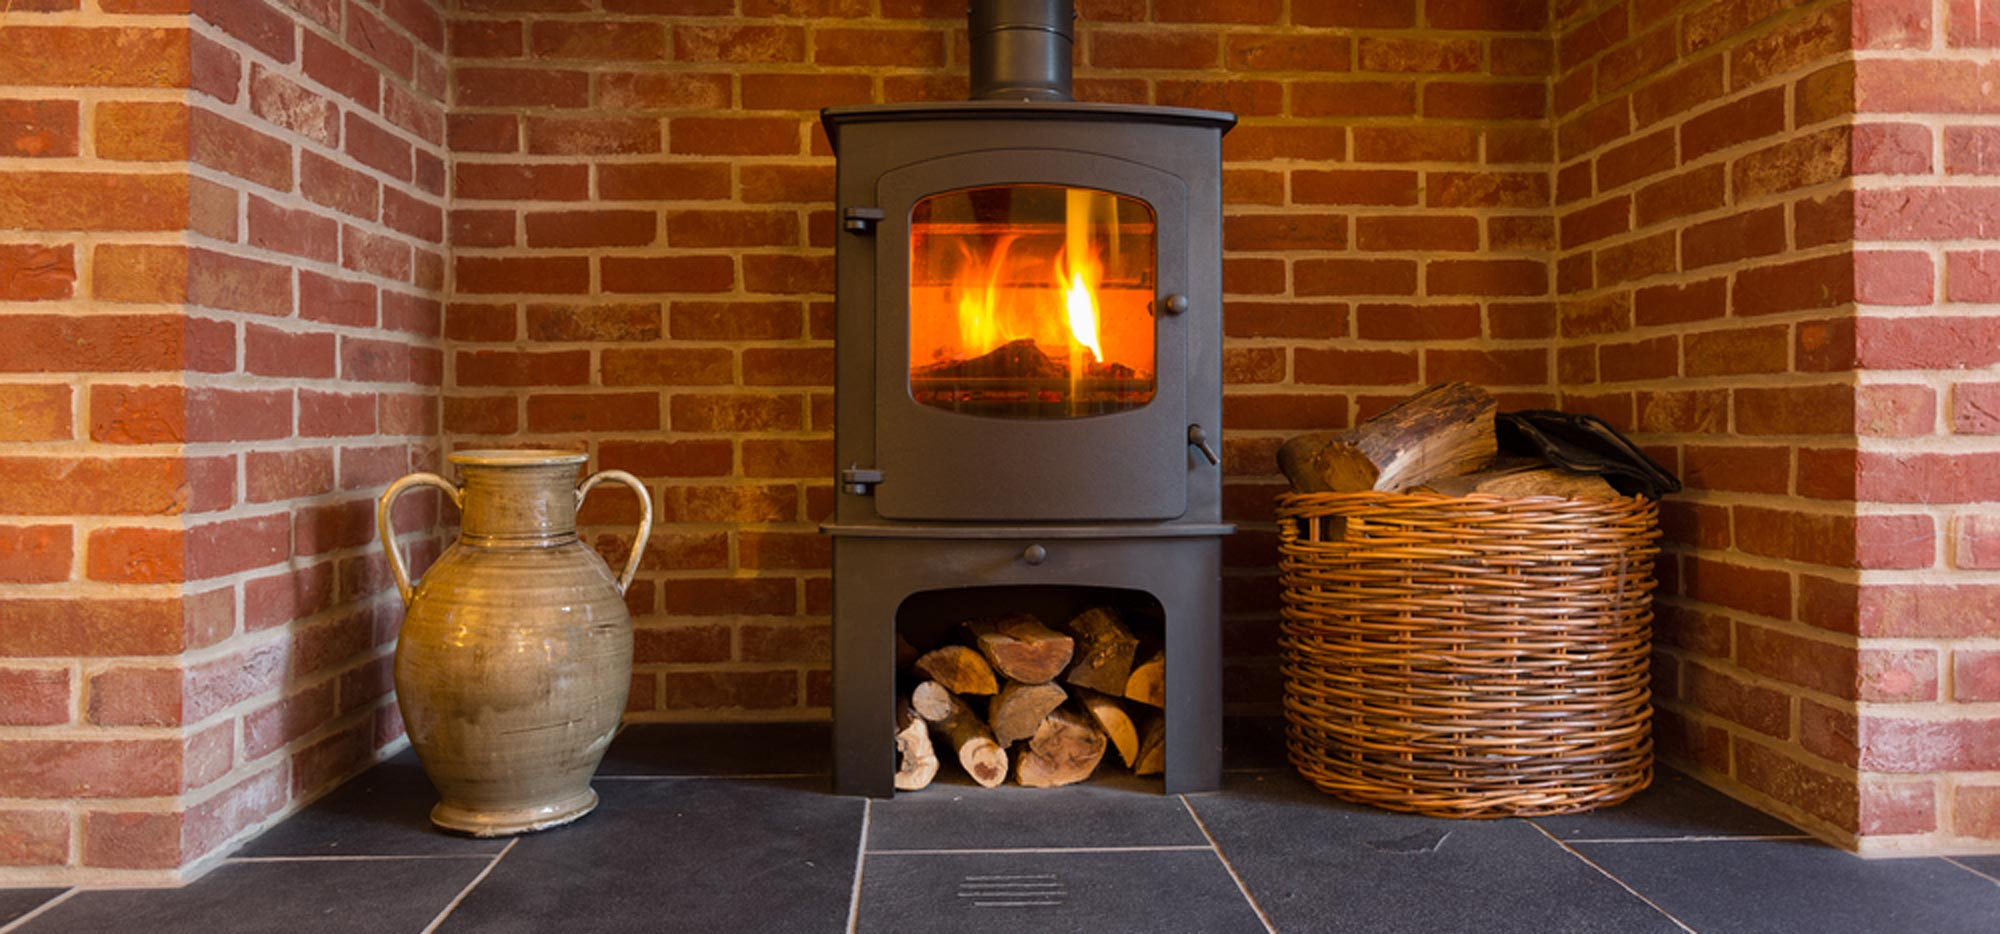 Chimney Construction Repair Amp Lining Services Hampshire